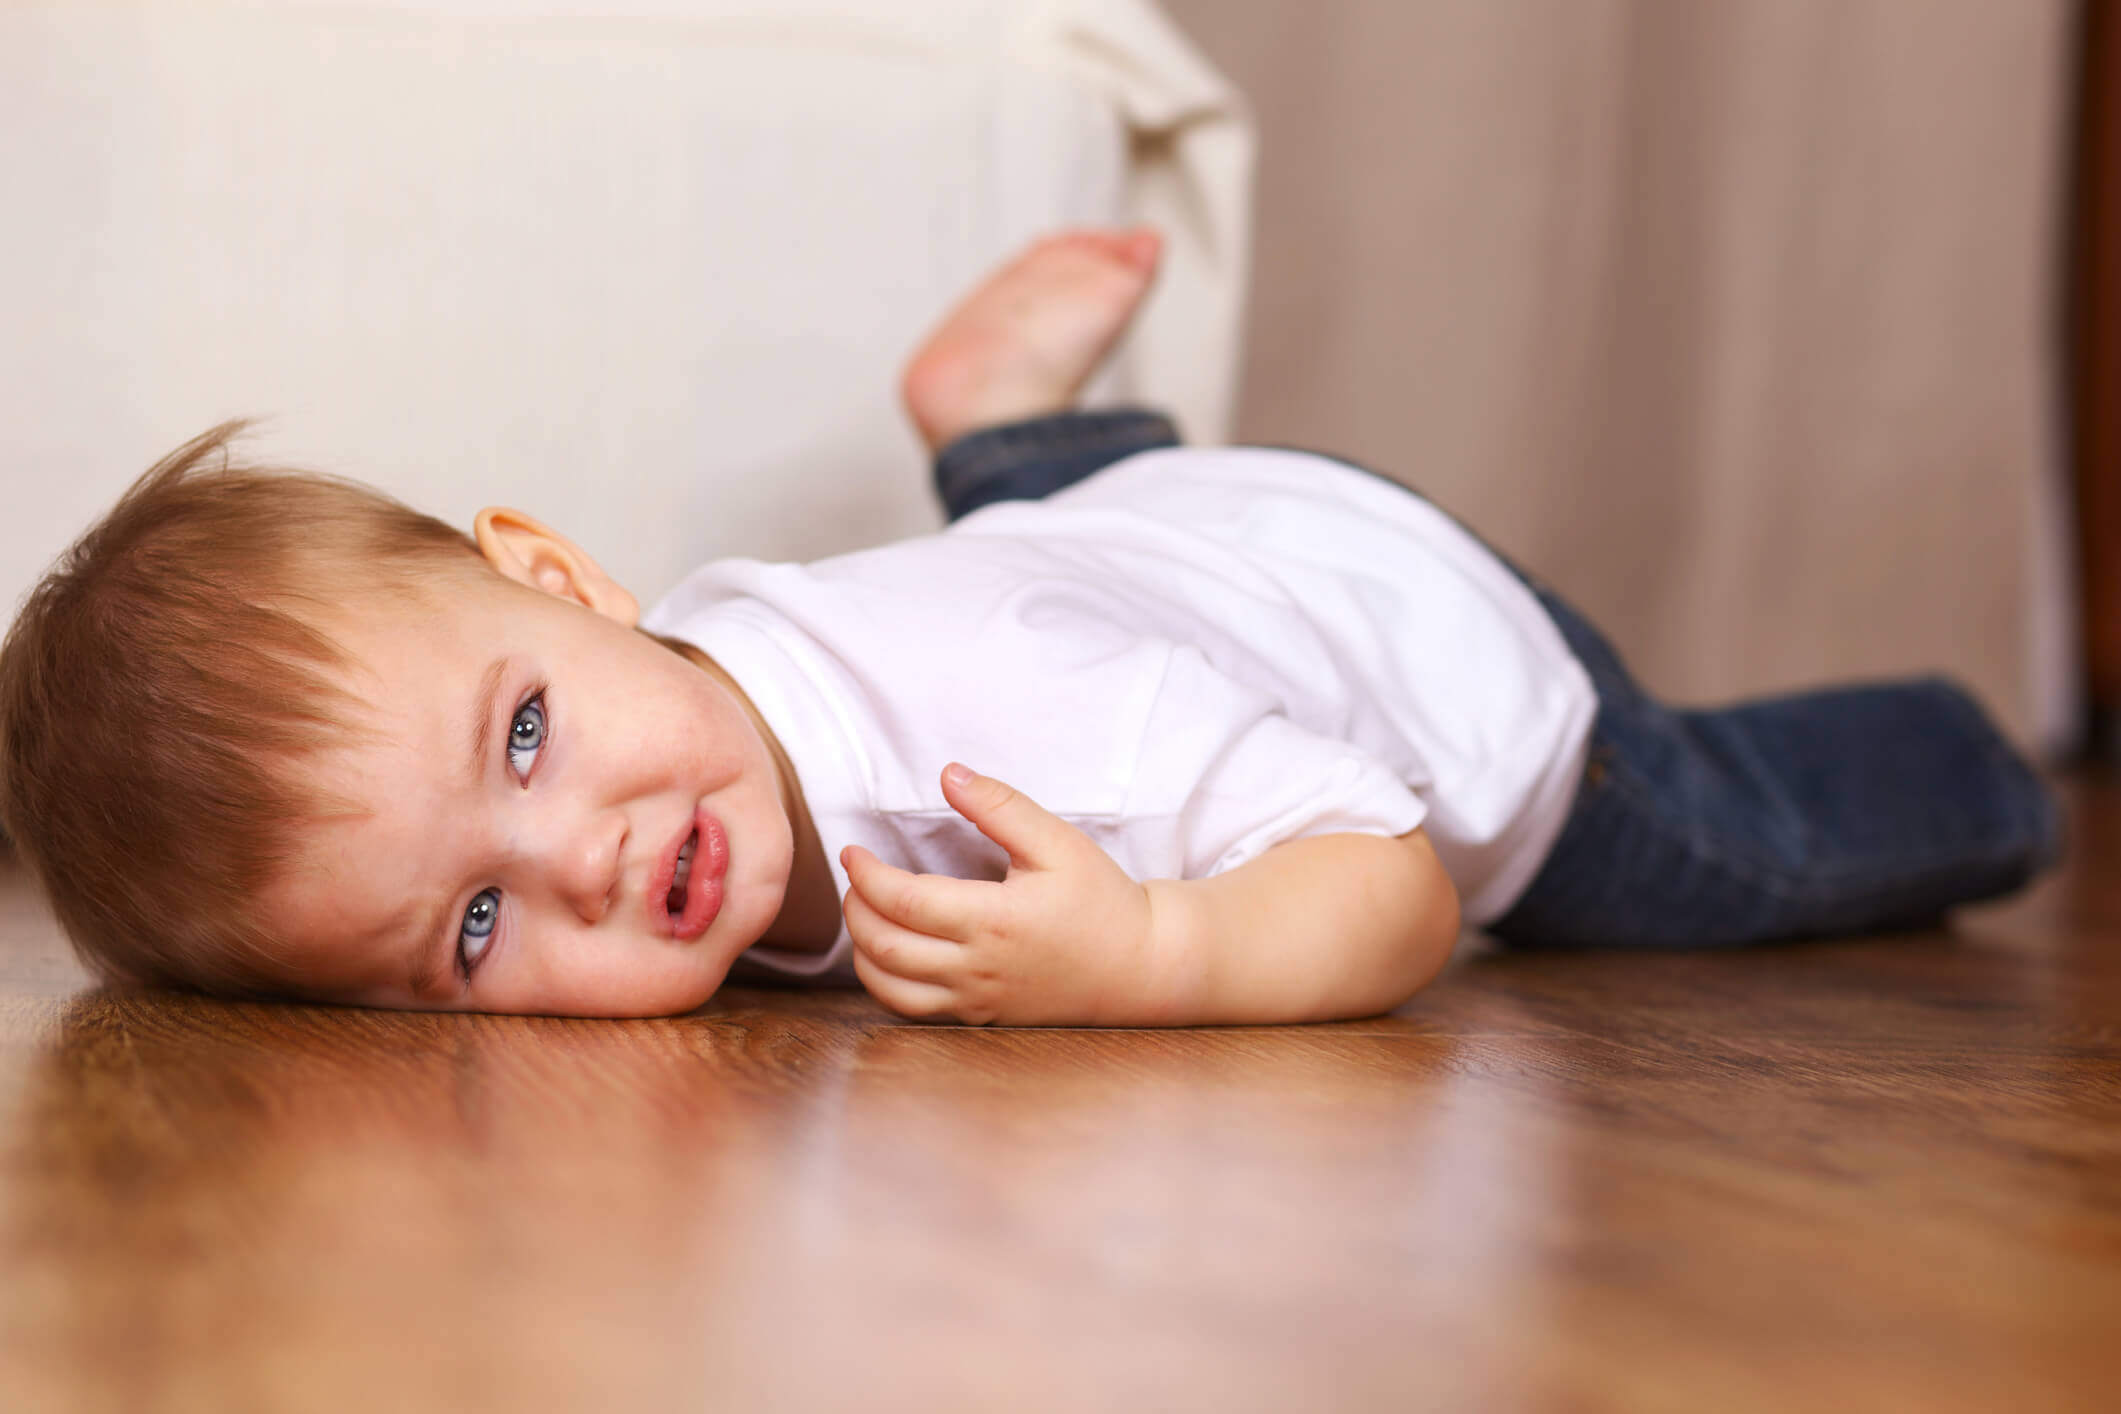 Baby Centre article - Just How Terrible are the Twos?